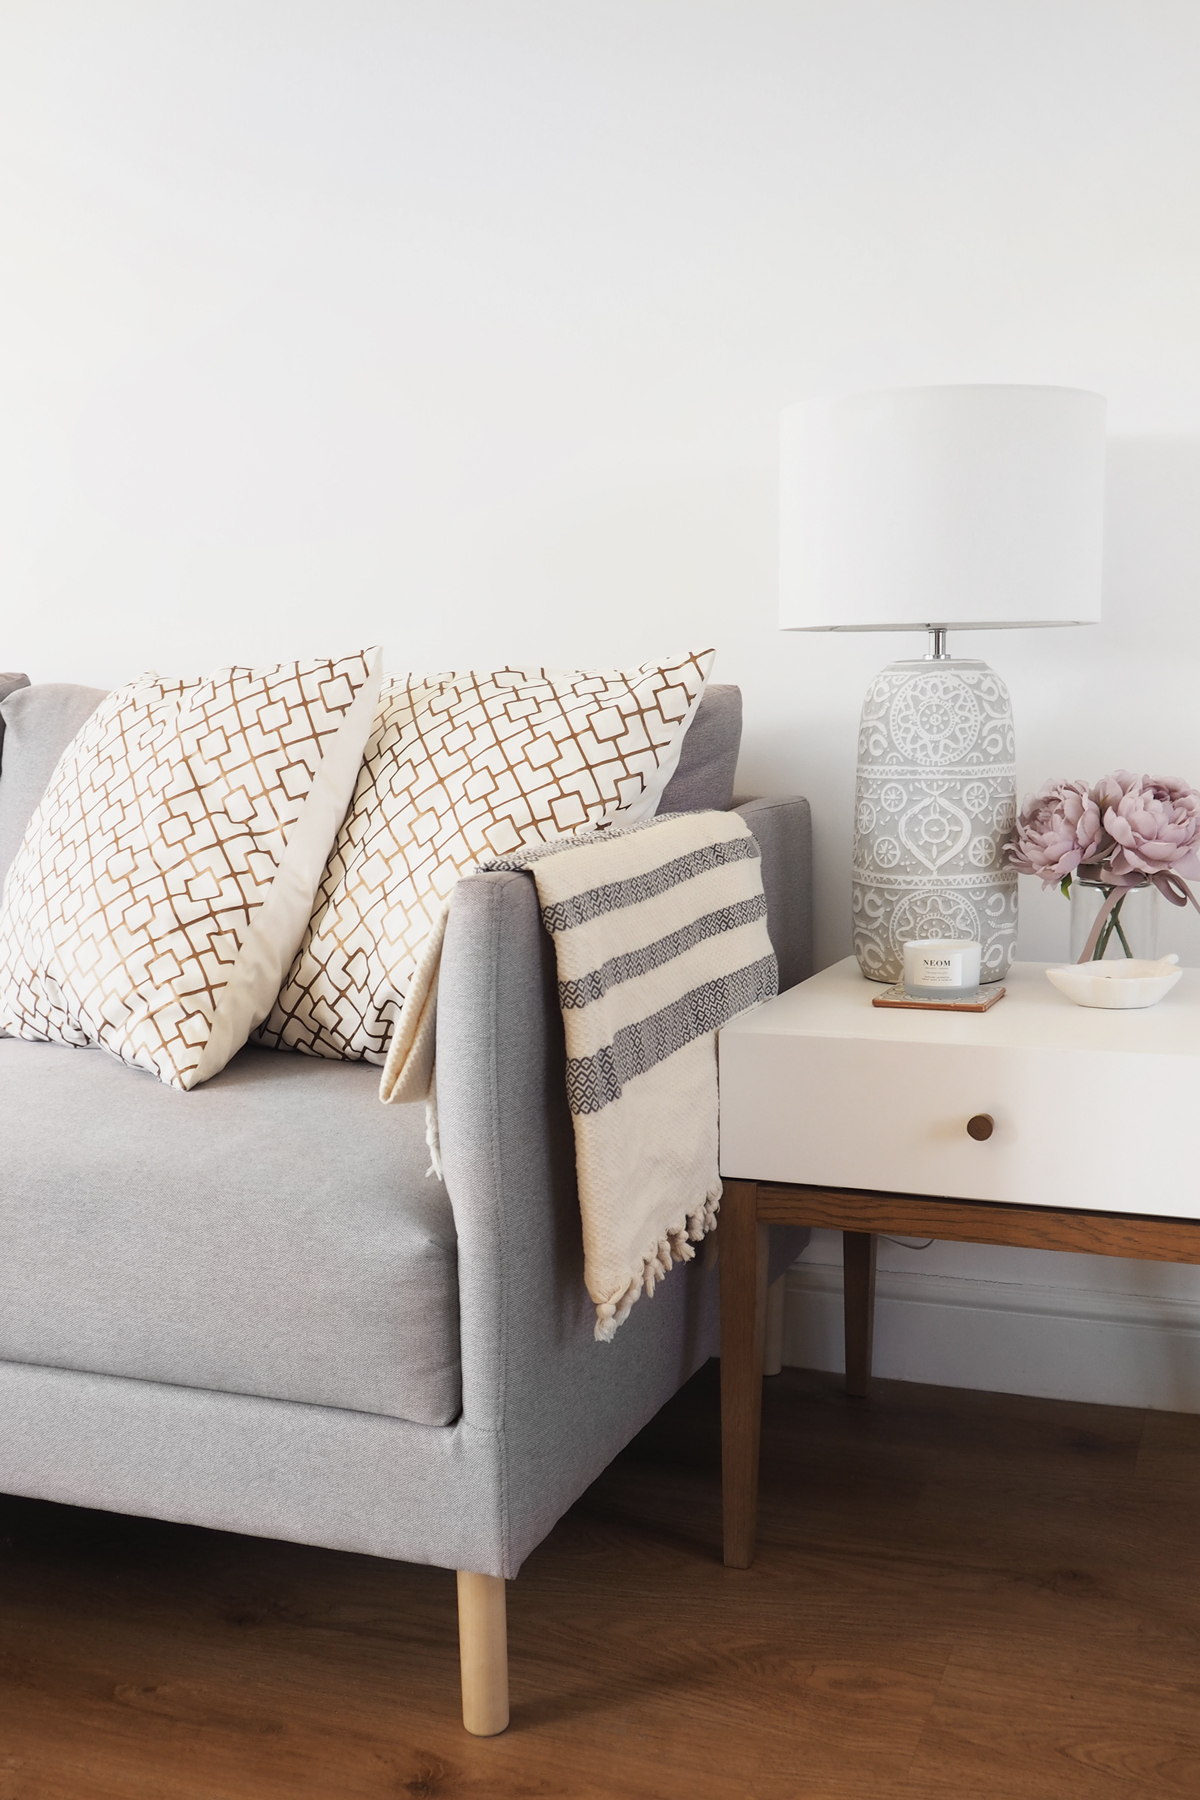 Styling Your Sofa Tips At Home With Abby